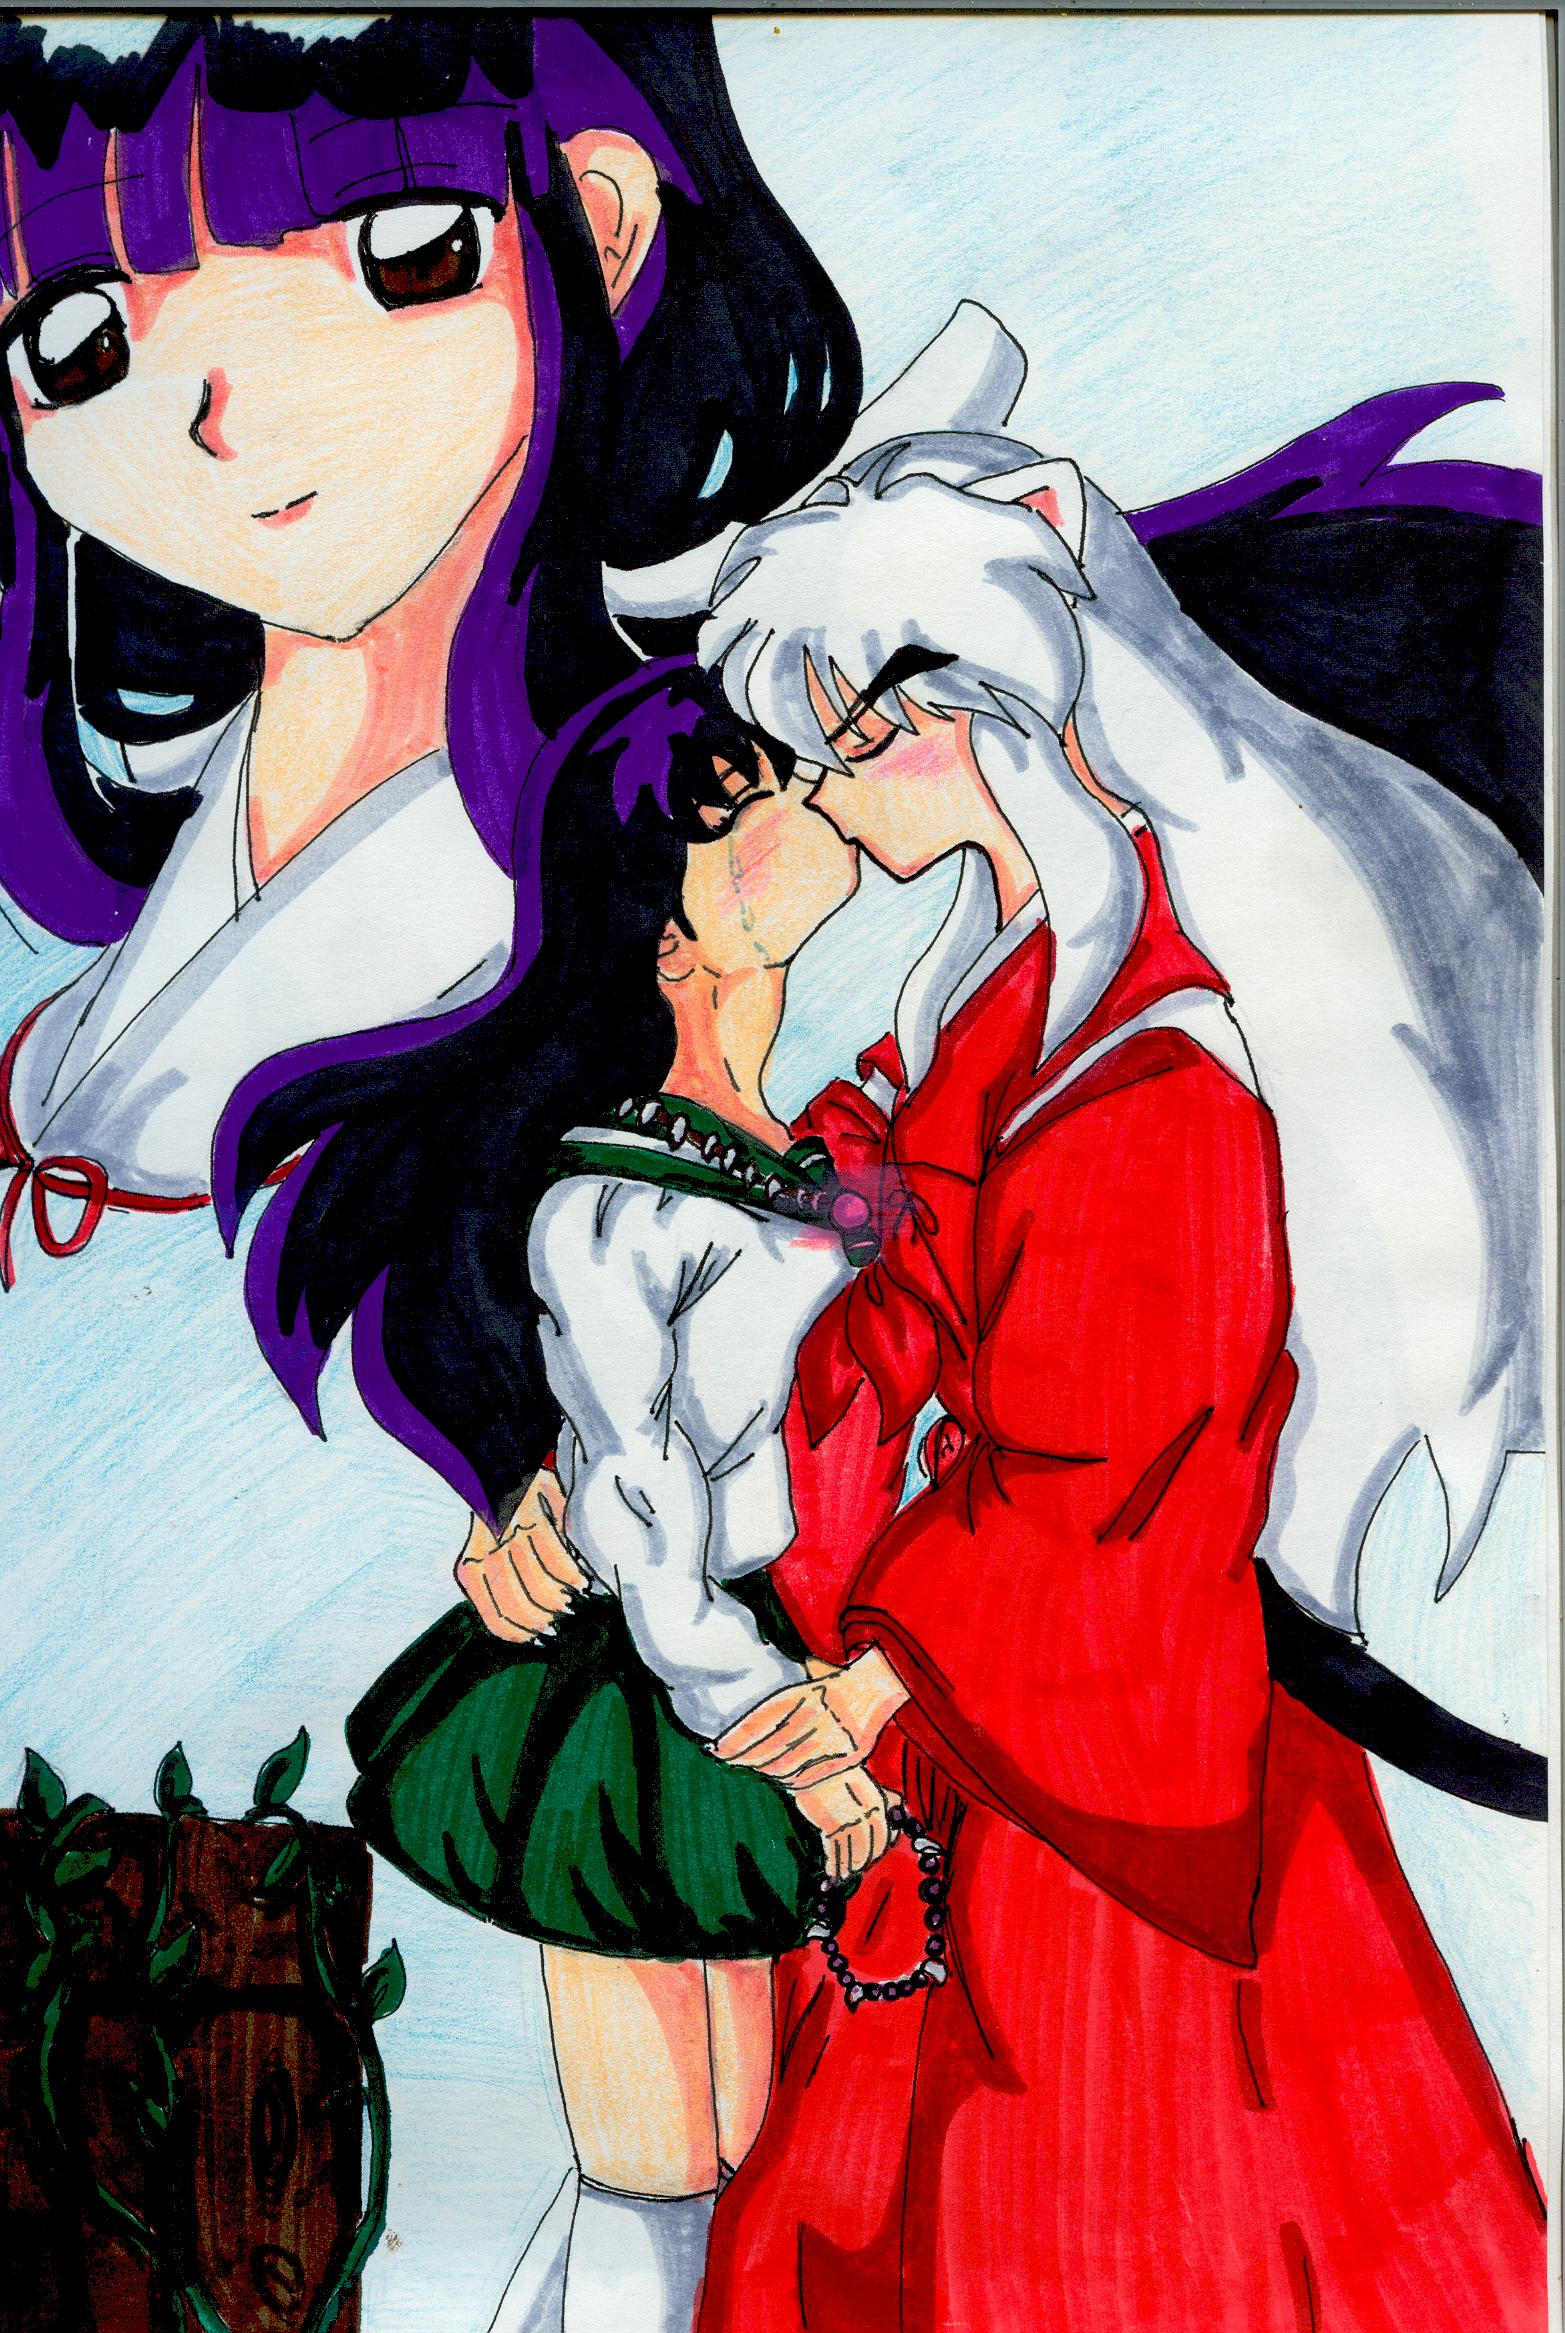 From have inuyasha sango sex